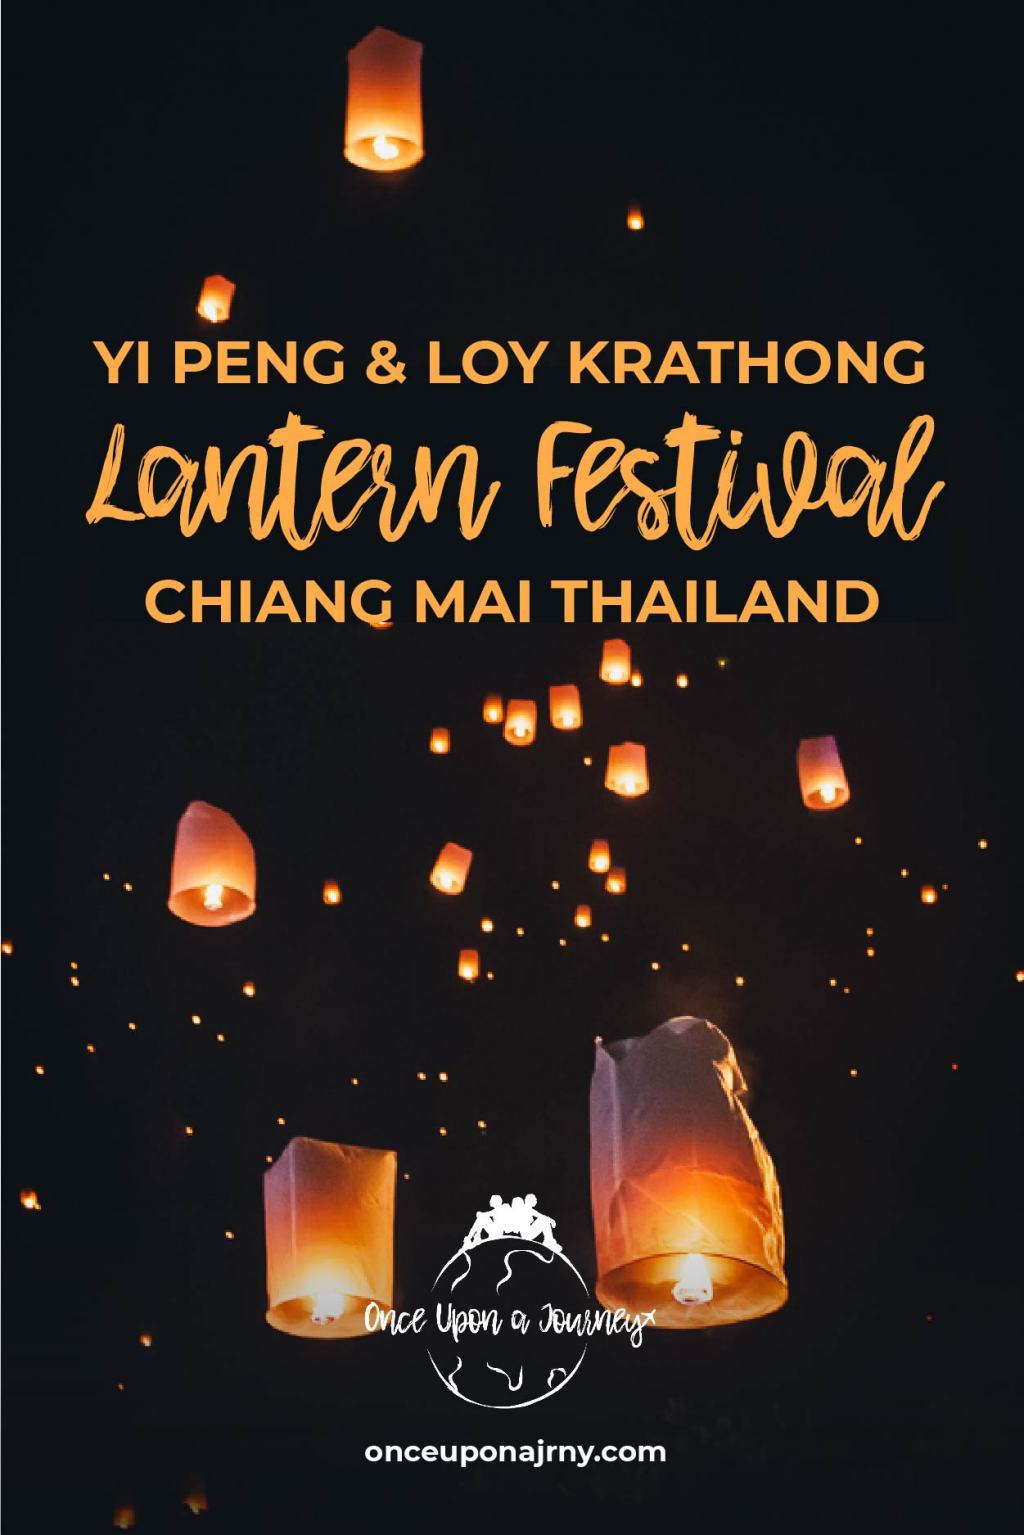 Lantern Festival Thailand The Ultimate Guide to the Magical Chiang Mai Lantern Festival